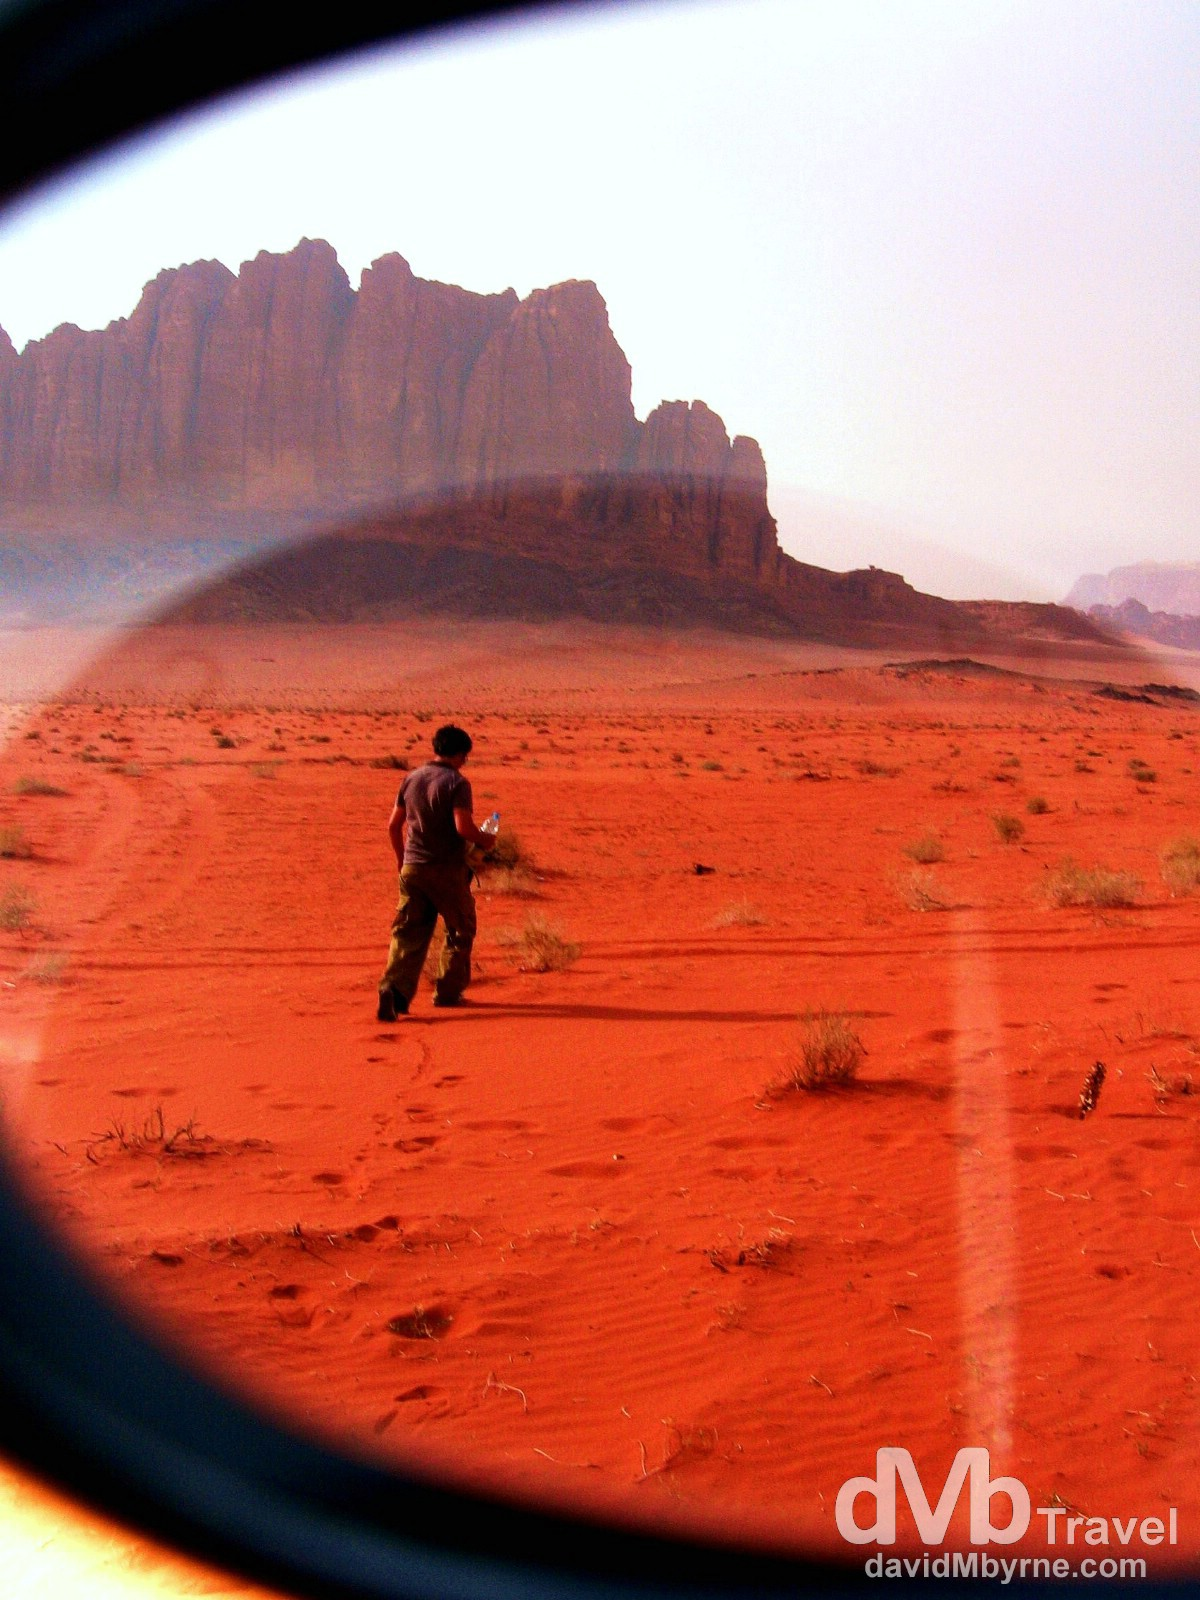 Breaking out over the red sands of Wadi Rum, Jordan, as seen through sunglasses. April 25, 2008.